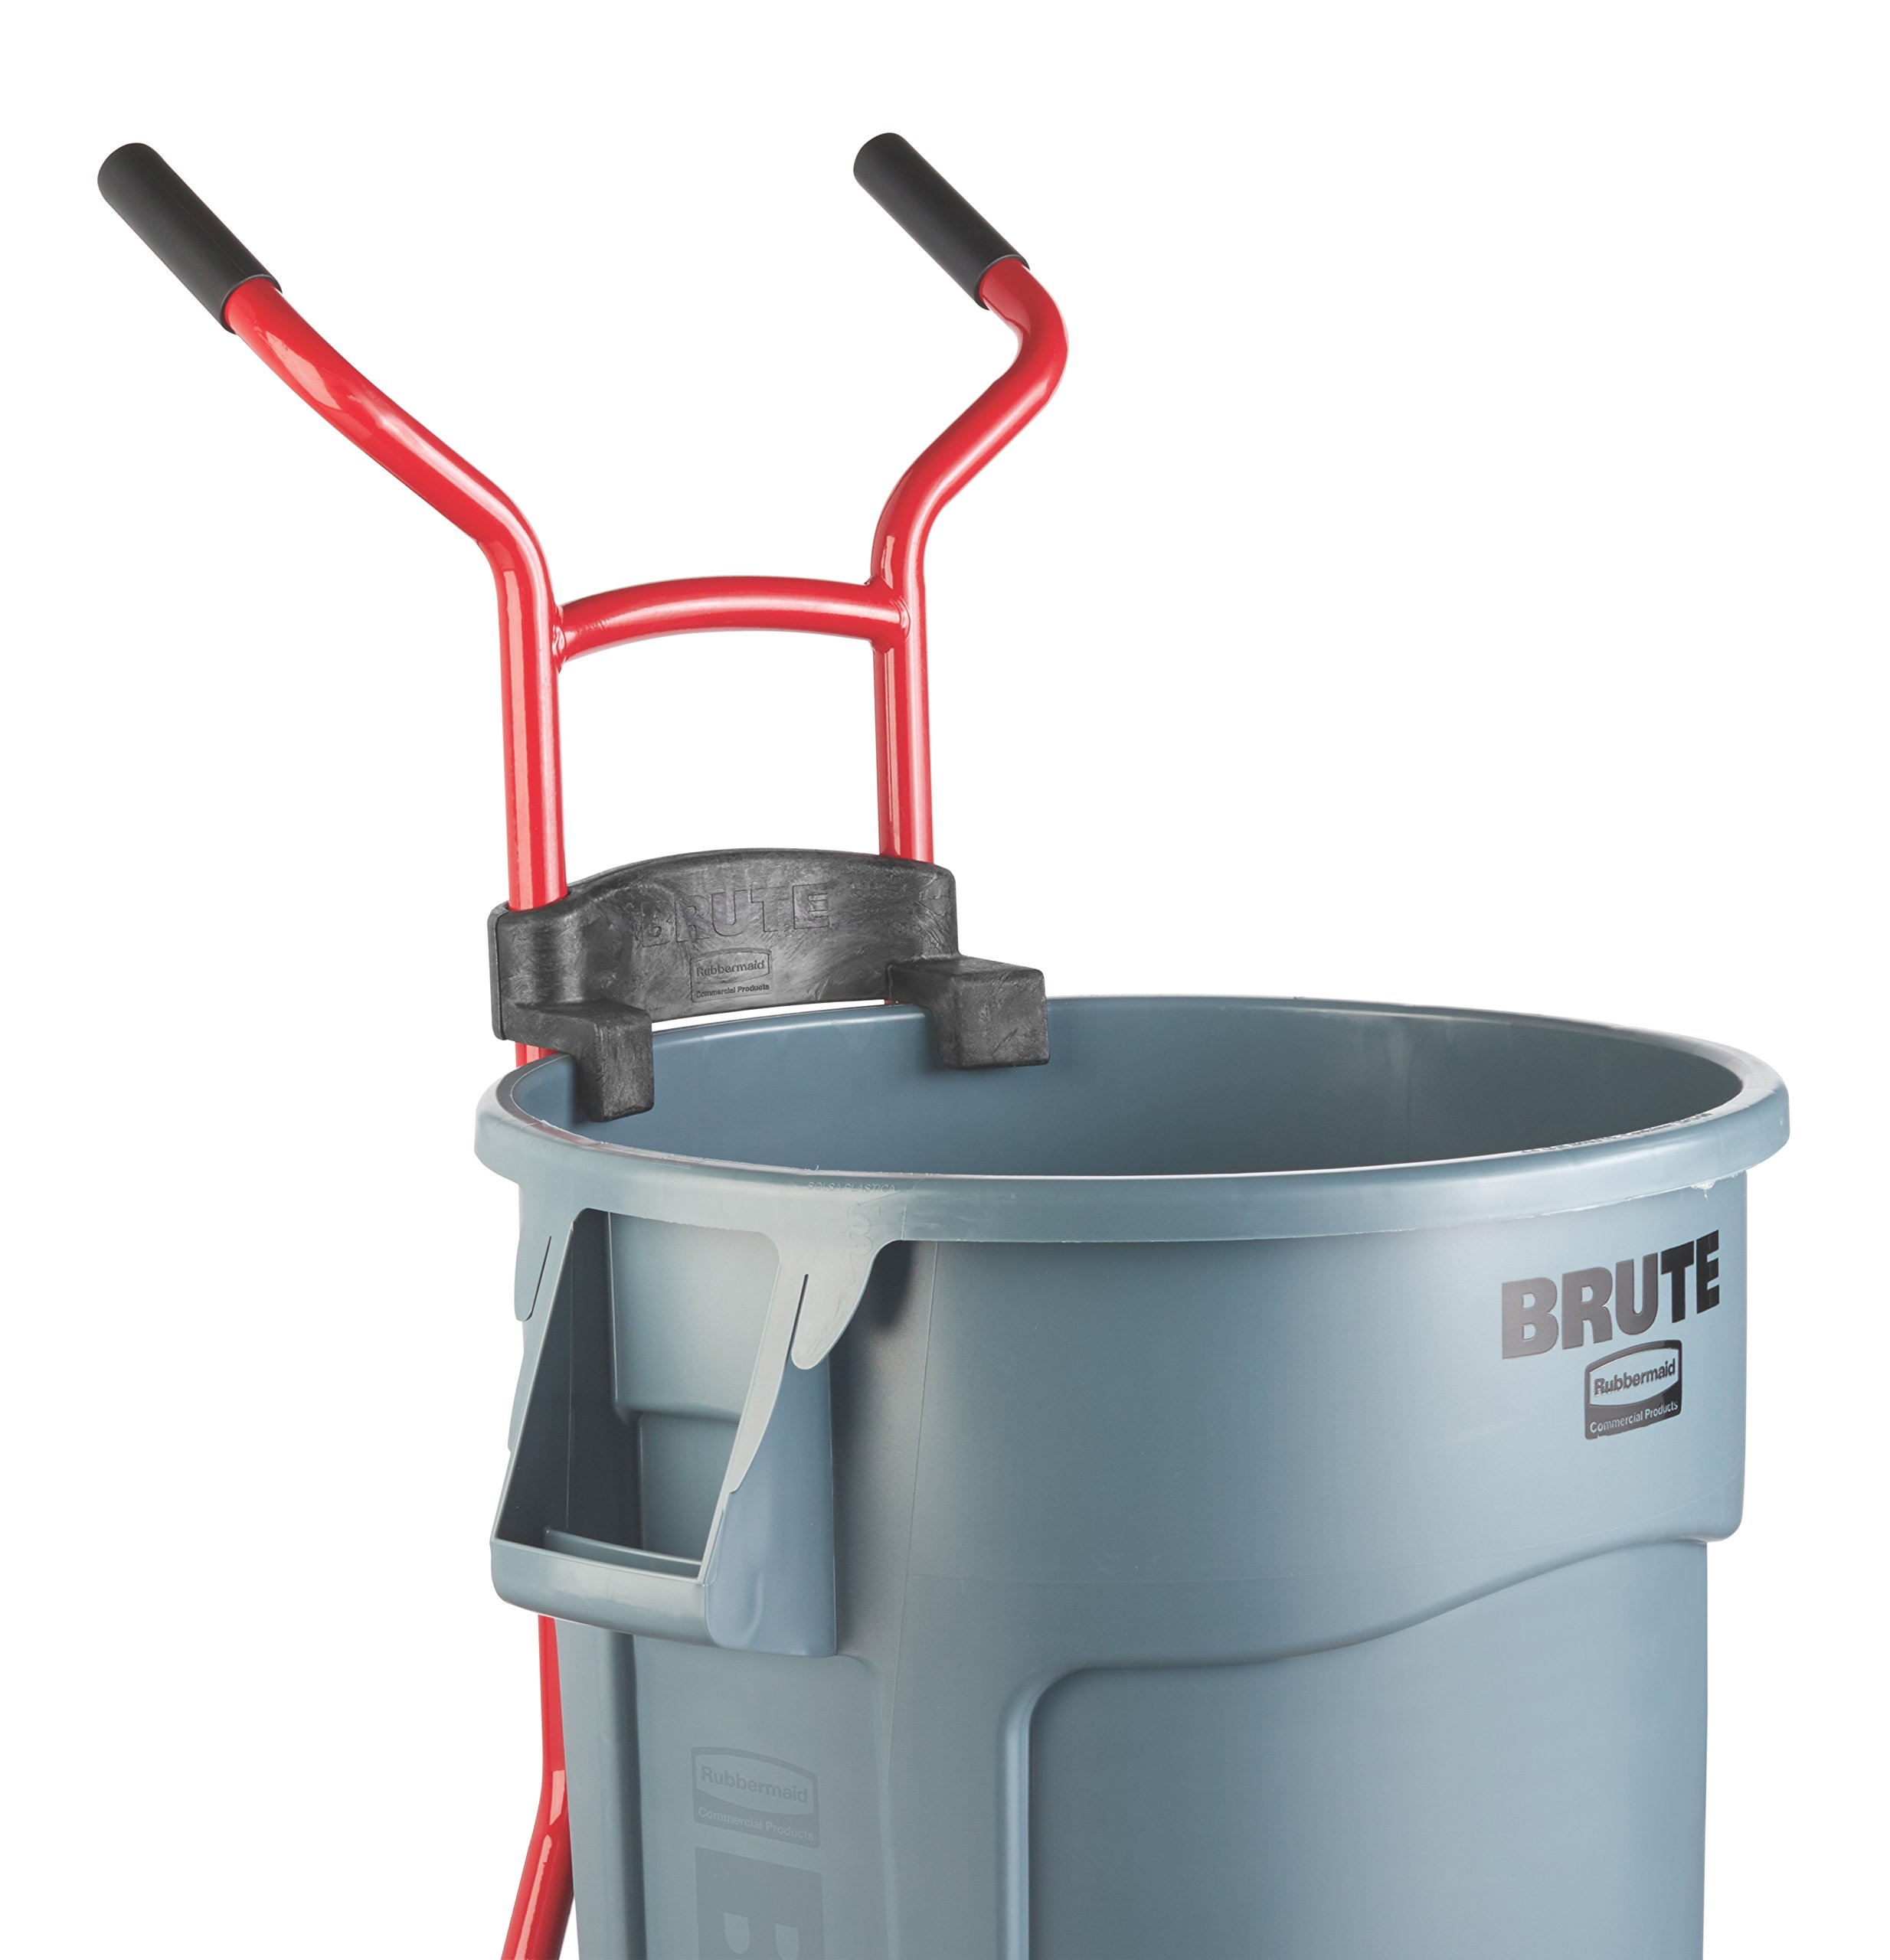 Rubbermaid Commercial Products Brute Construction and Landscape Dolly (1997410) by Rubbermaid Commercial Products (Image #10)